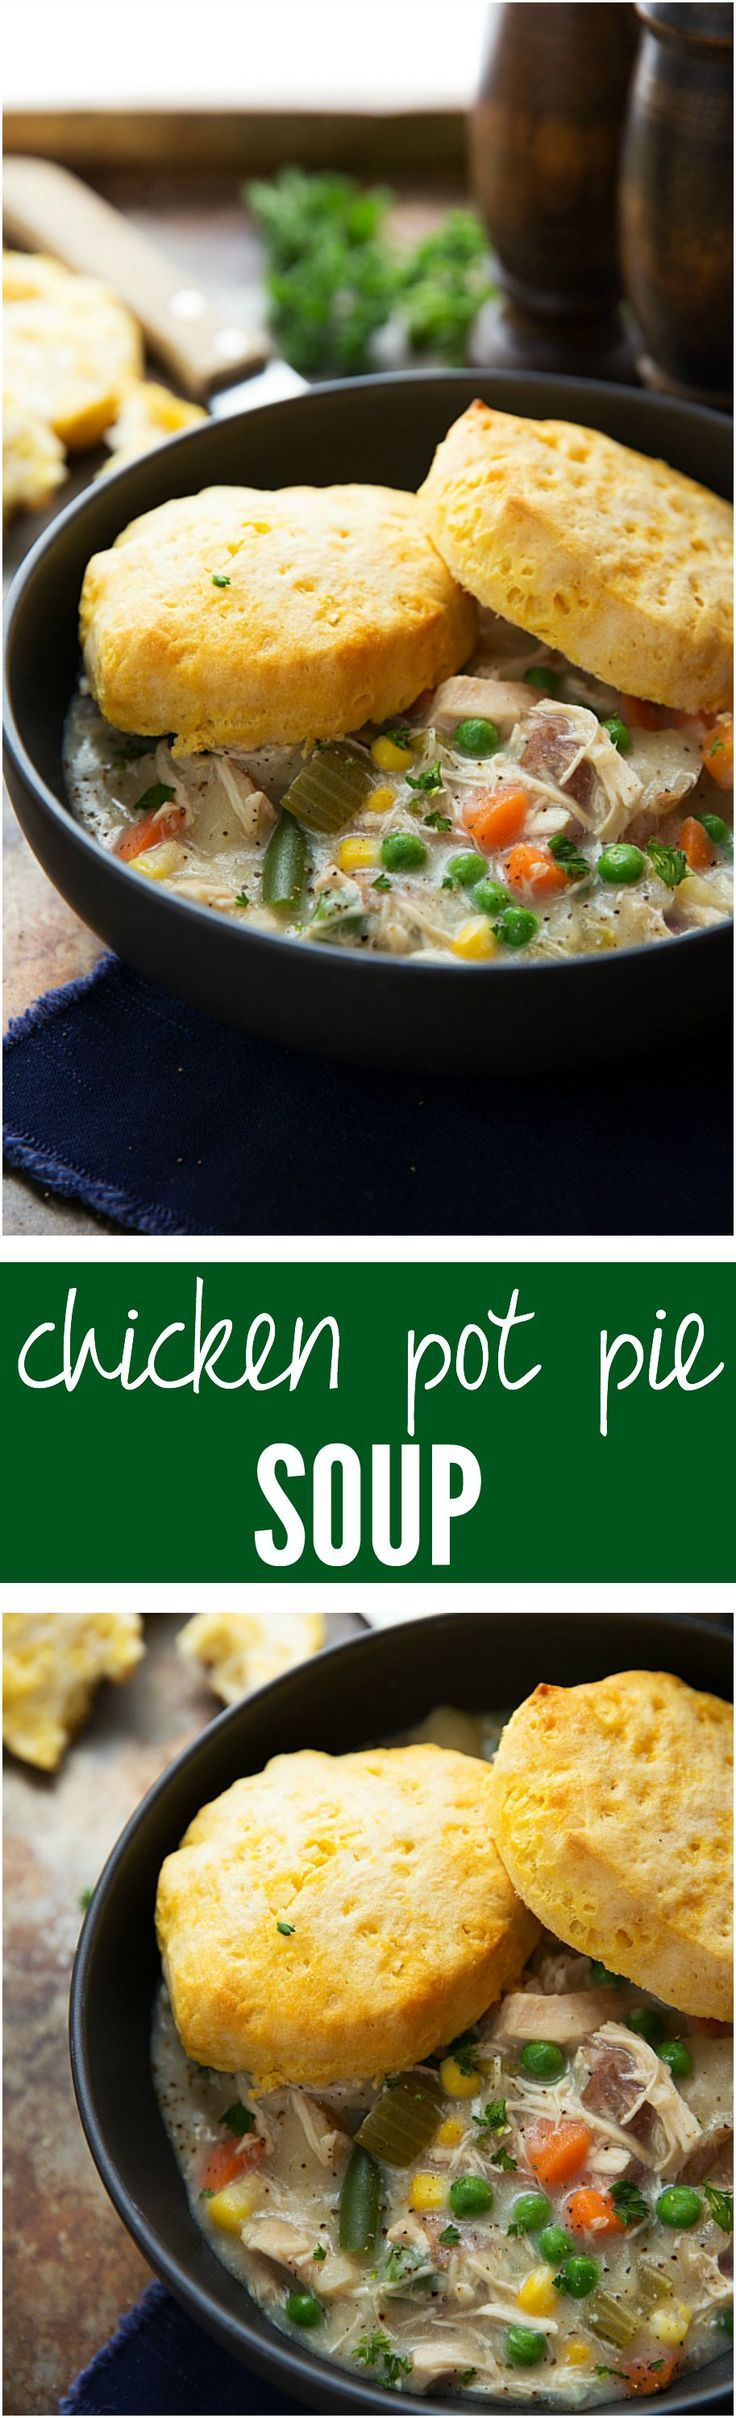 Chicken Pot Pie Soup - So easy to make and rich and creamy and delicious! Comfort food at its finest!